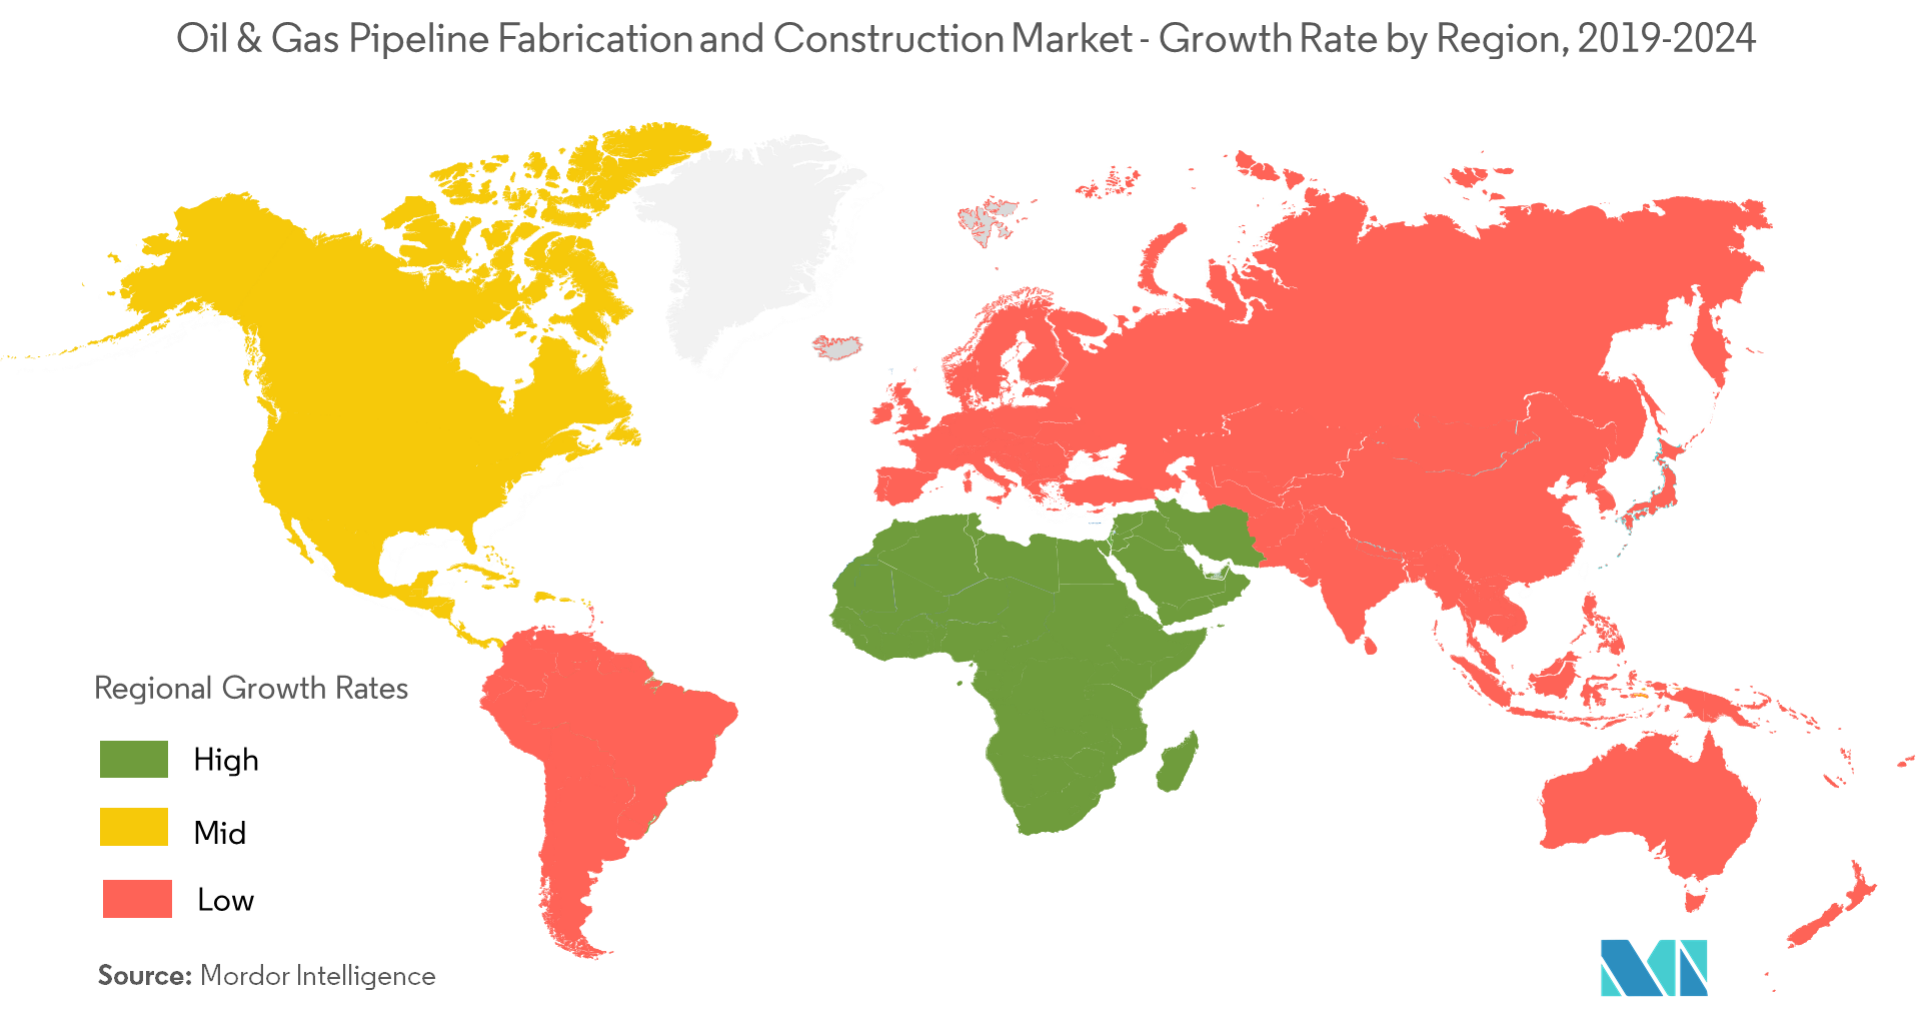 Oil & Gas Pipeline Fabrication and Construction Market - Regional